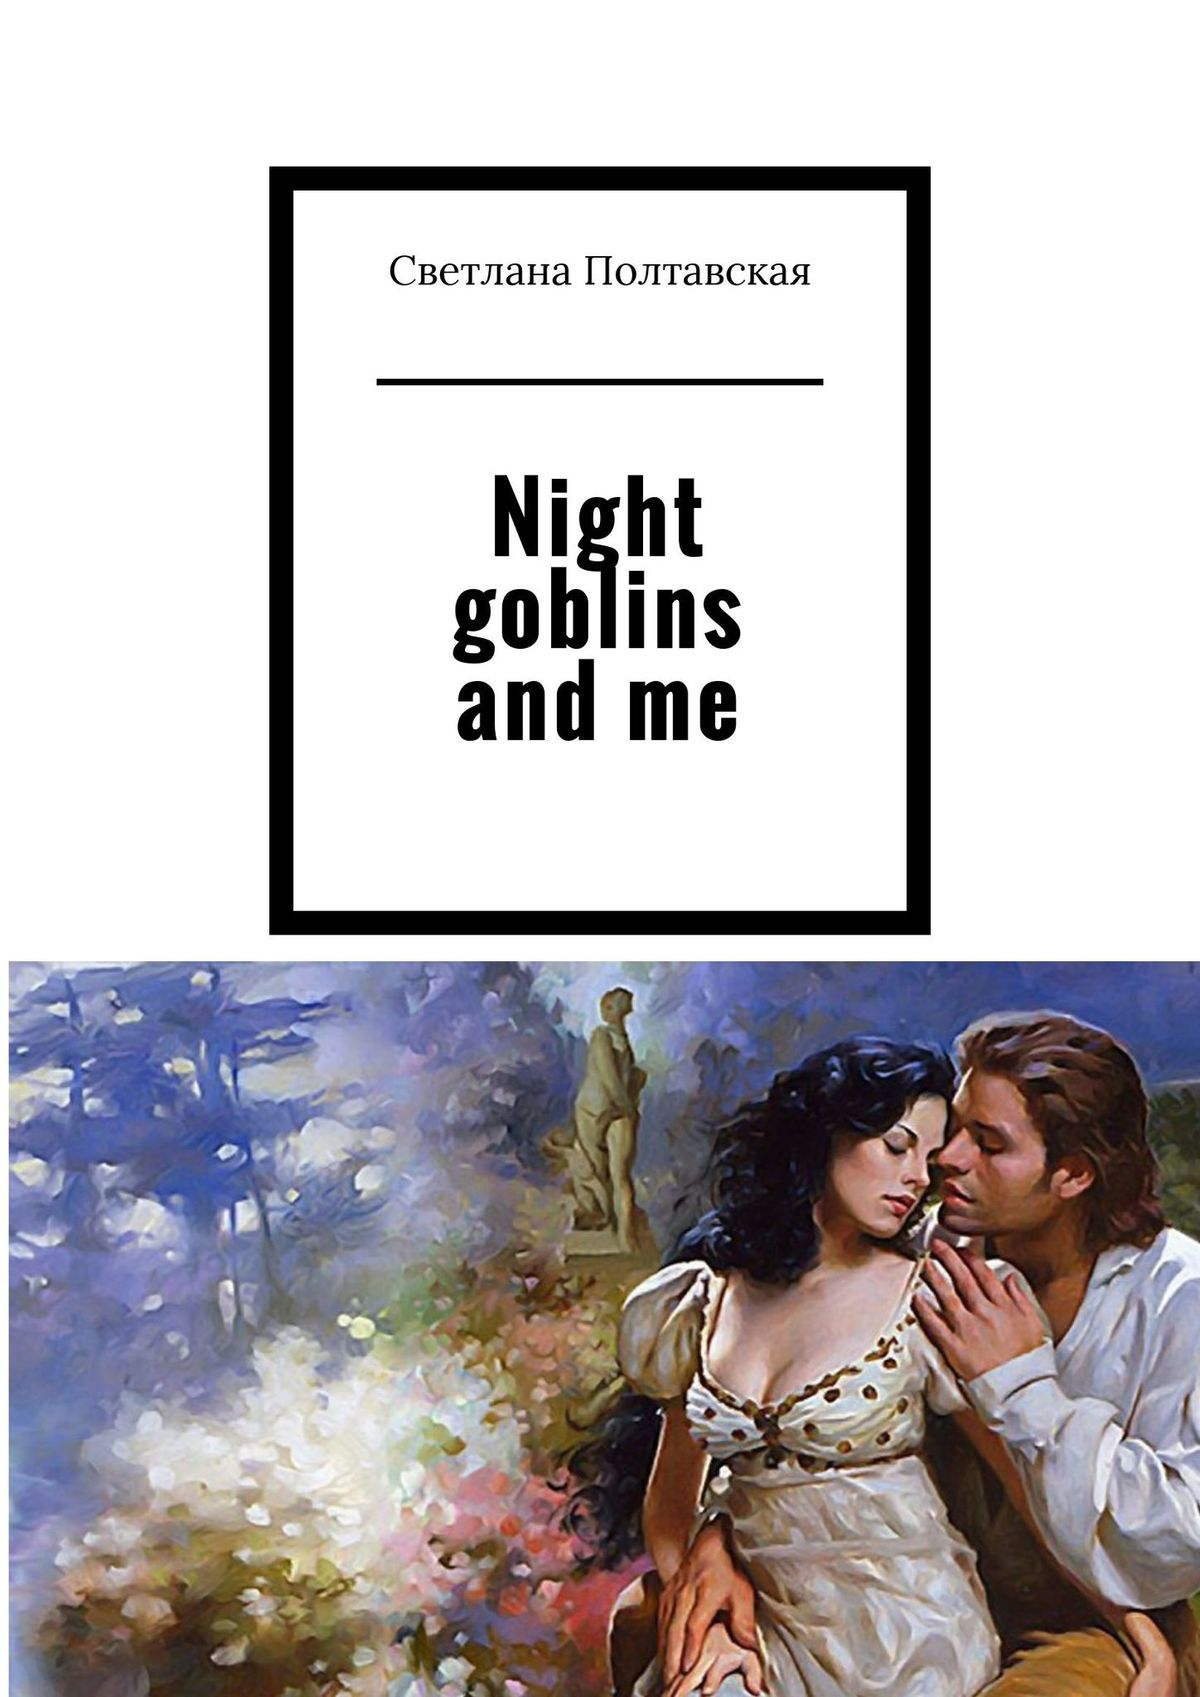 Светлана Полтавская Night goblins and me business and ethics in a country with political socio economic crisis